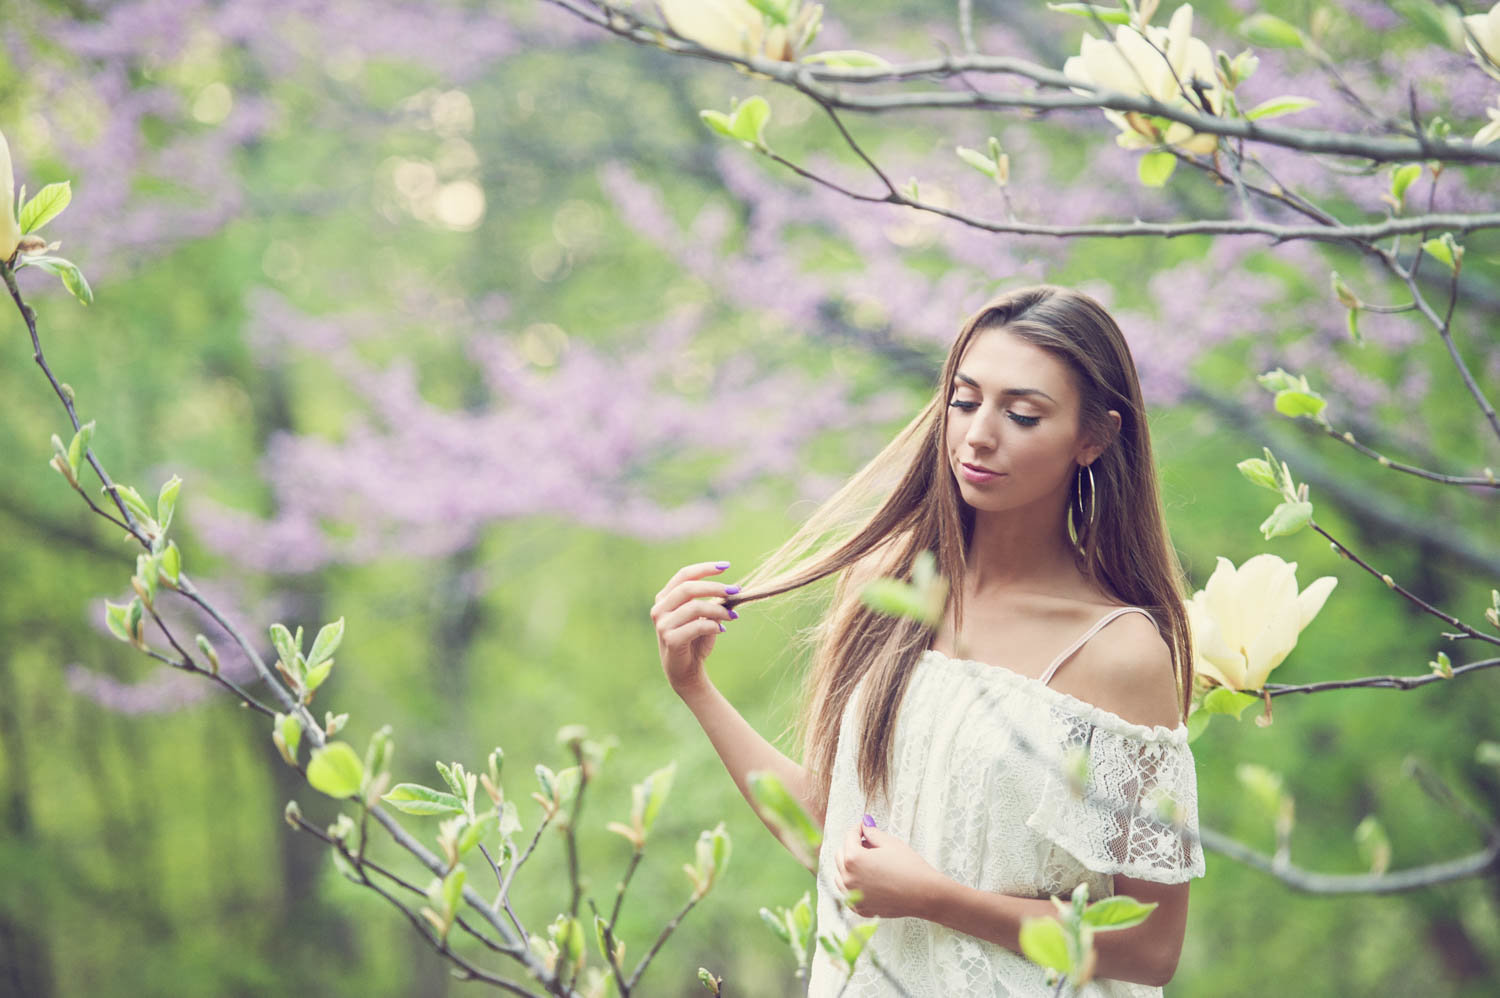 Spring nature senior photo of girl with trees and flowers